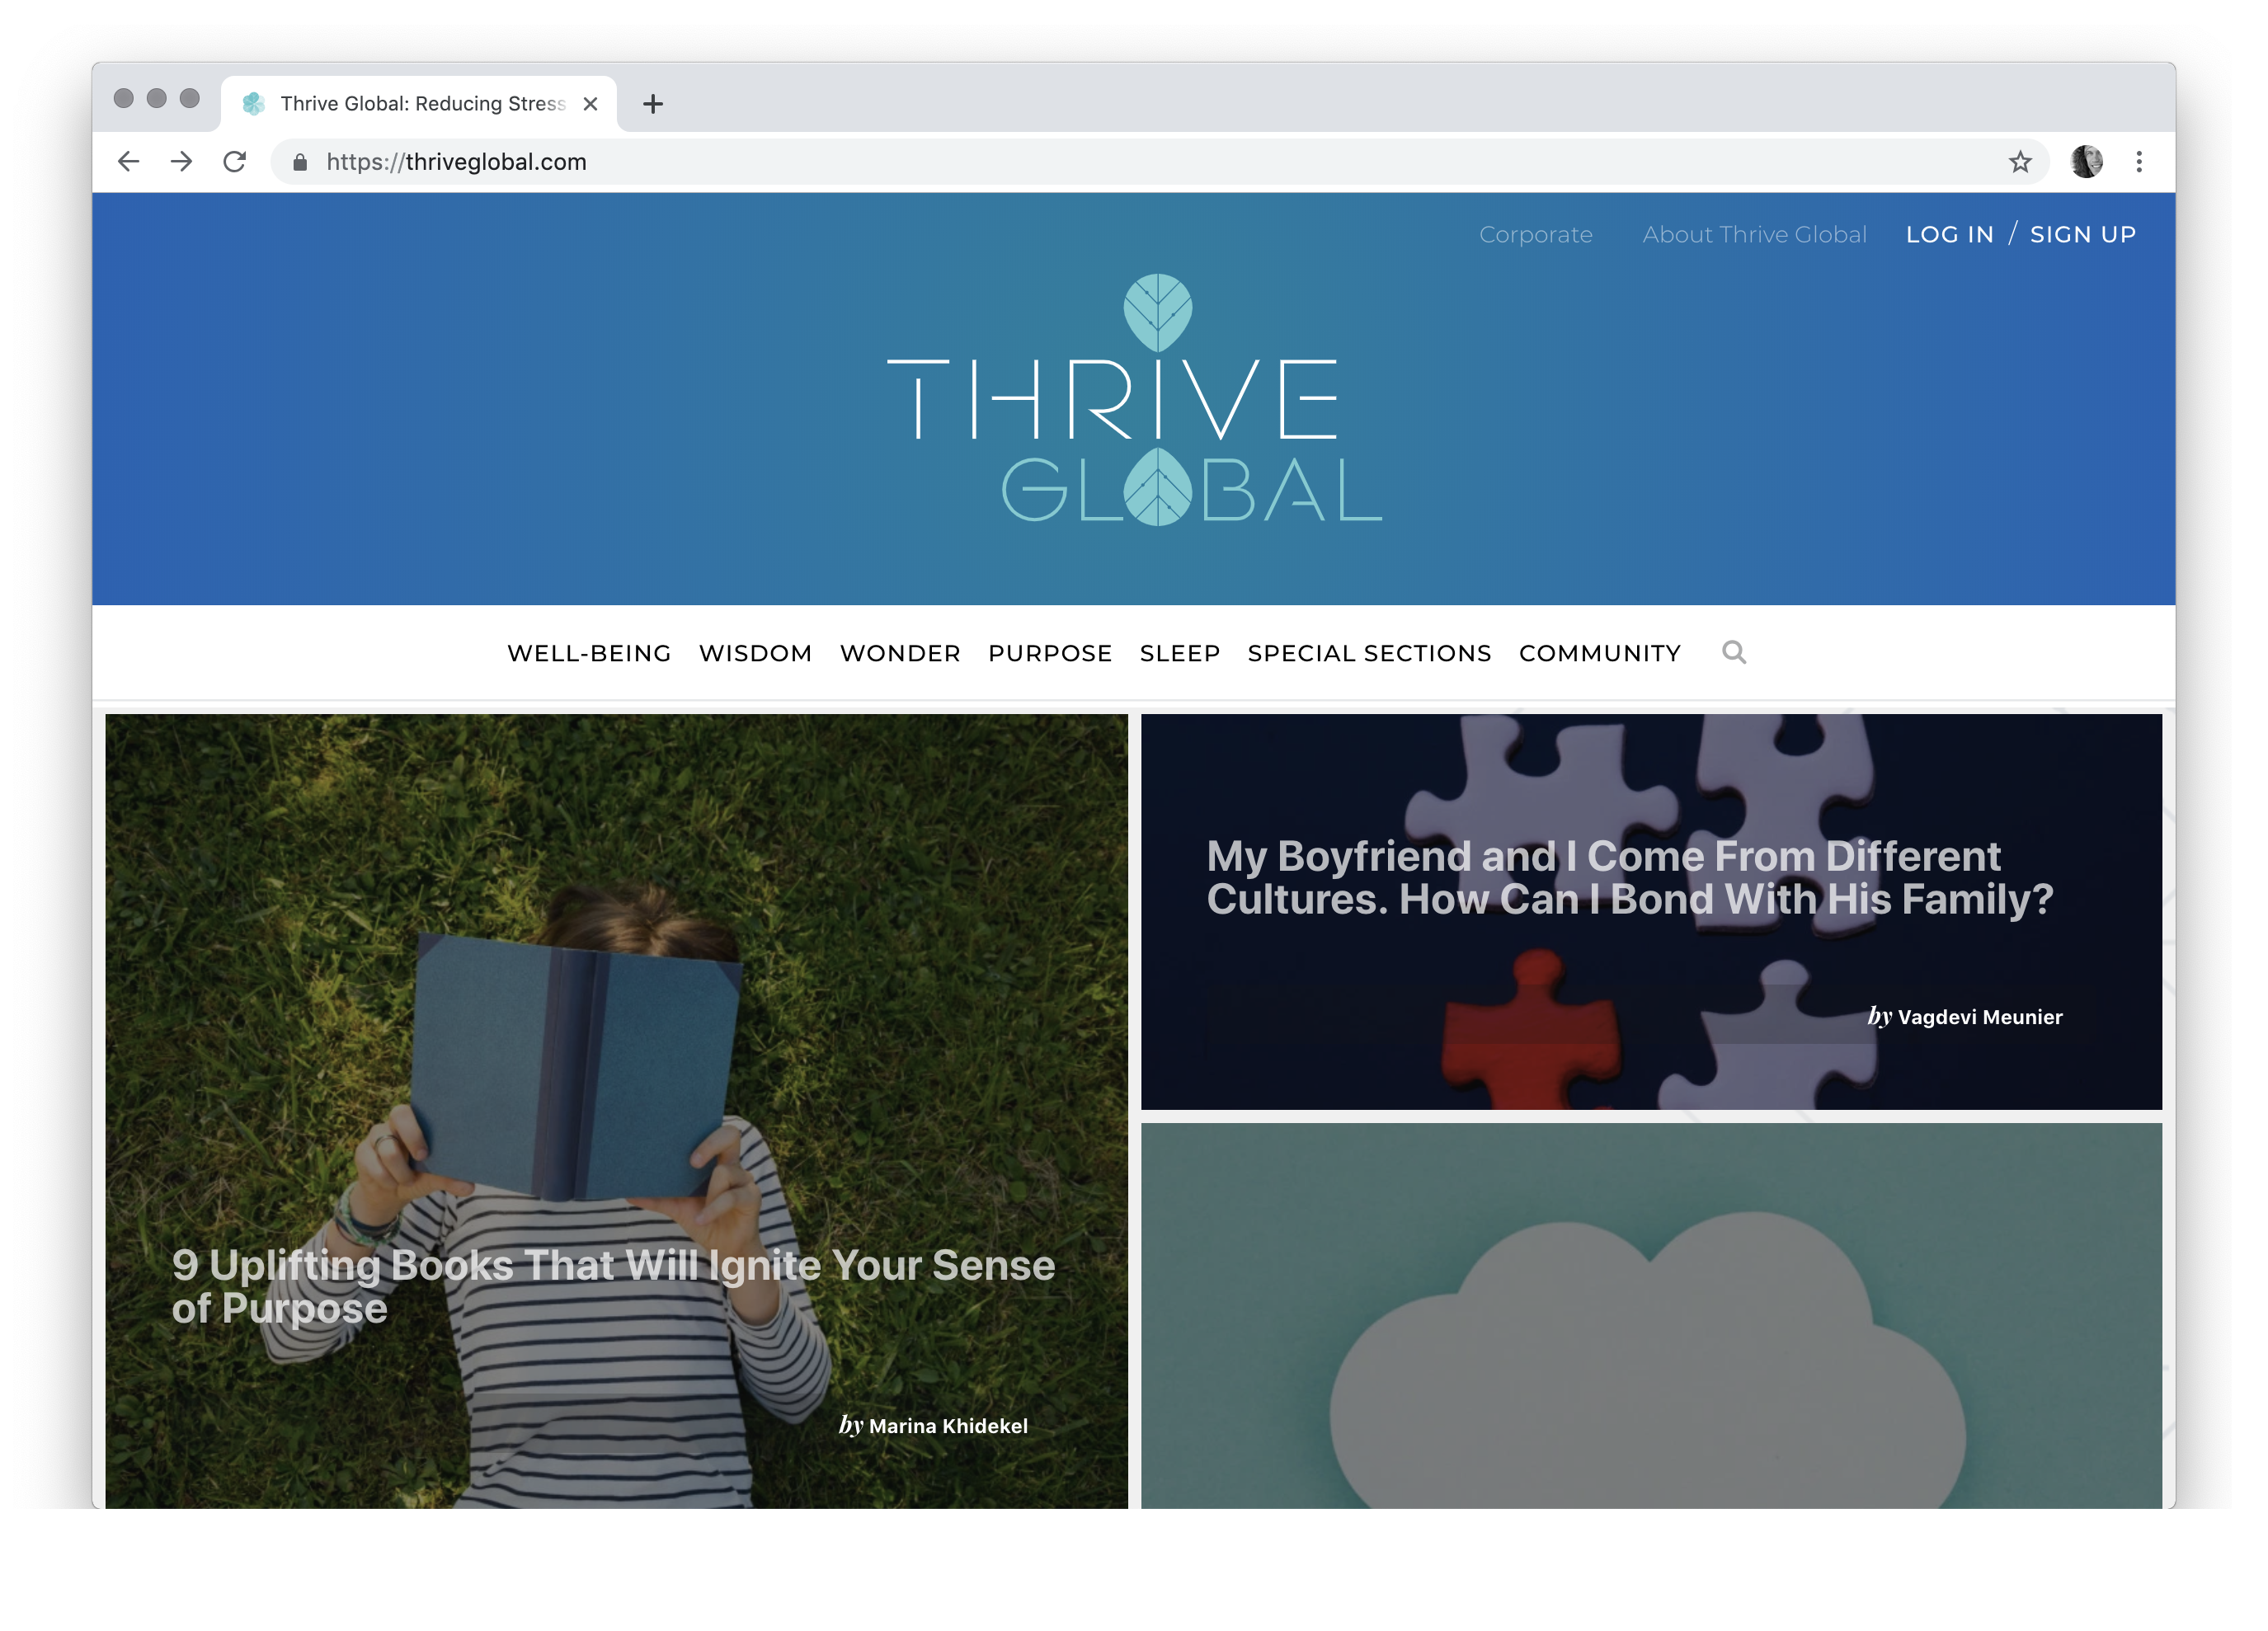 Thrive Global: Reducing Stress and Burnout, Promoting Health and Well-Being